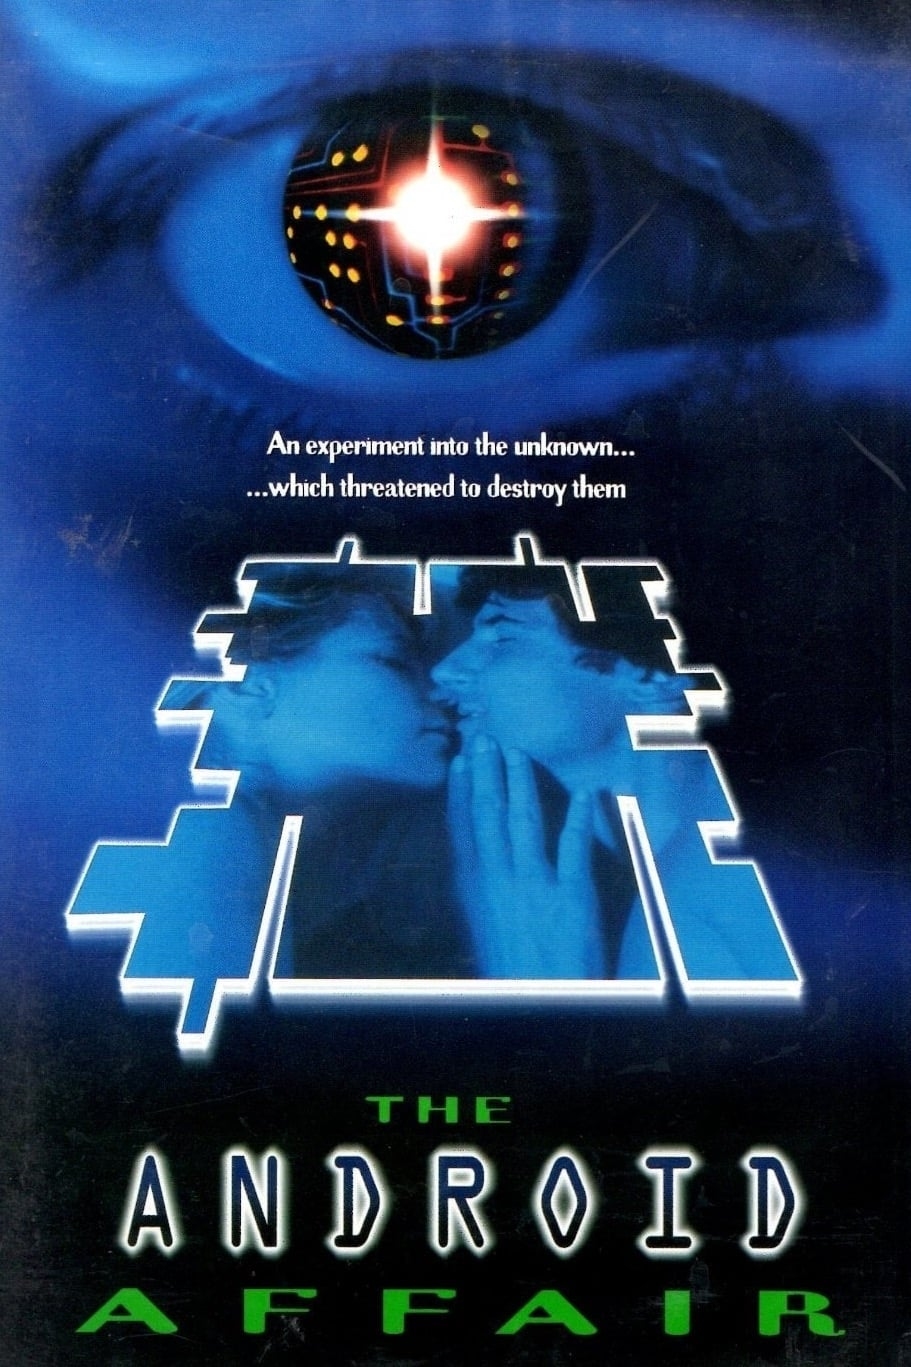 The Android Affair (1995)